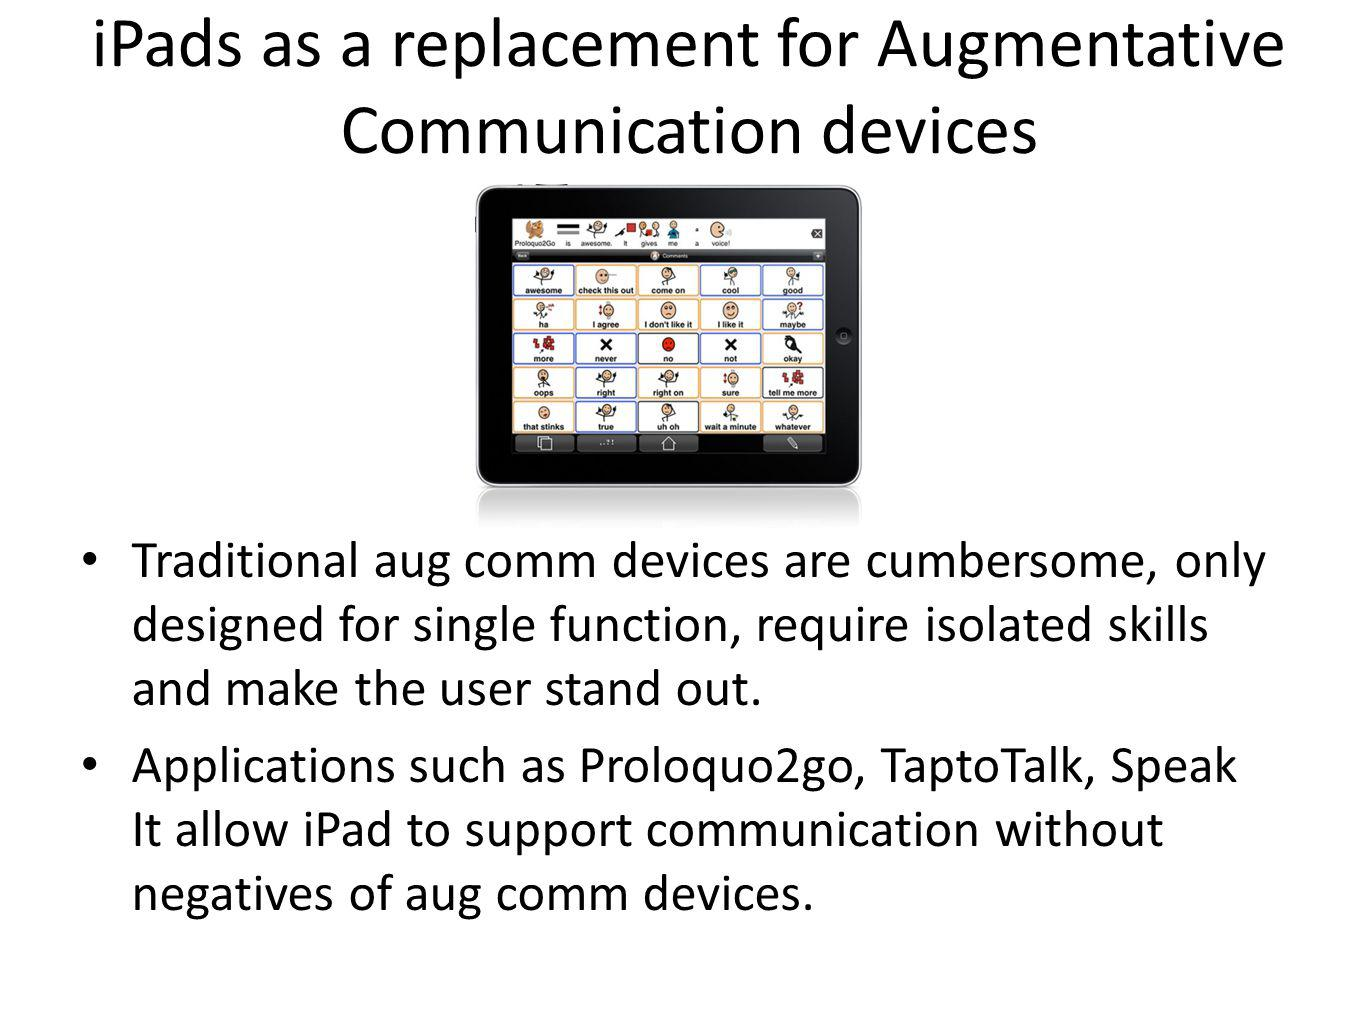 iPads as a replacement for Augmentative Communication devices Traditional aug comm devices are cumbersome, only designed for single function, require isolated skills and make the user stand out.